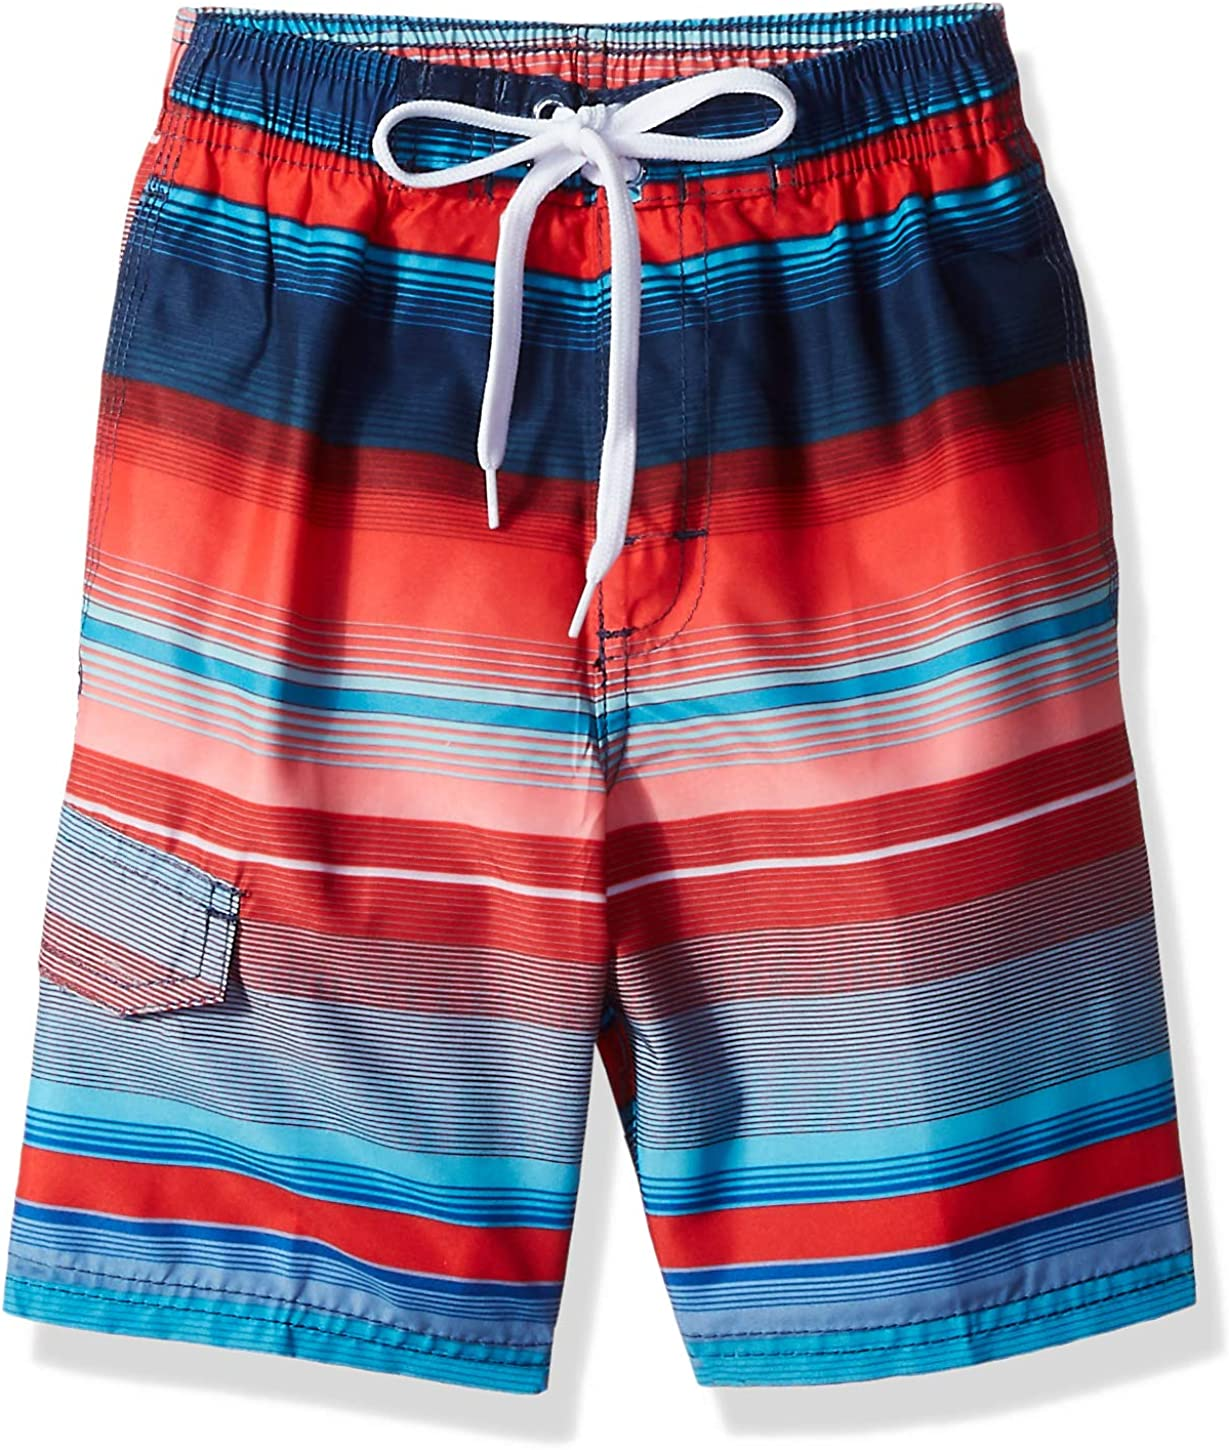 Kanu Surf Boys Horizon Quick Dry Beach Swim Trunk